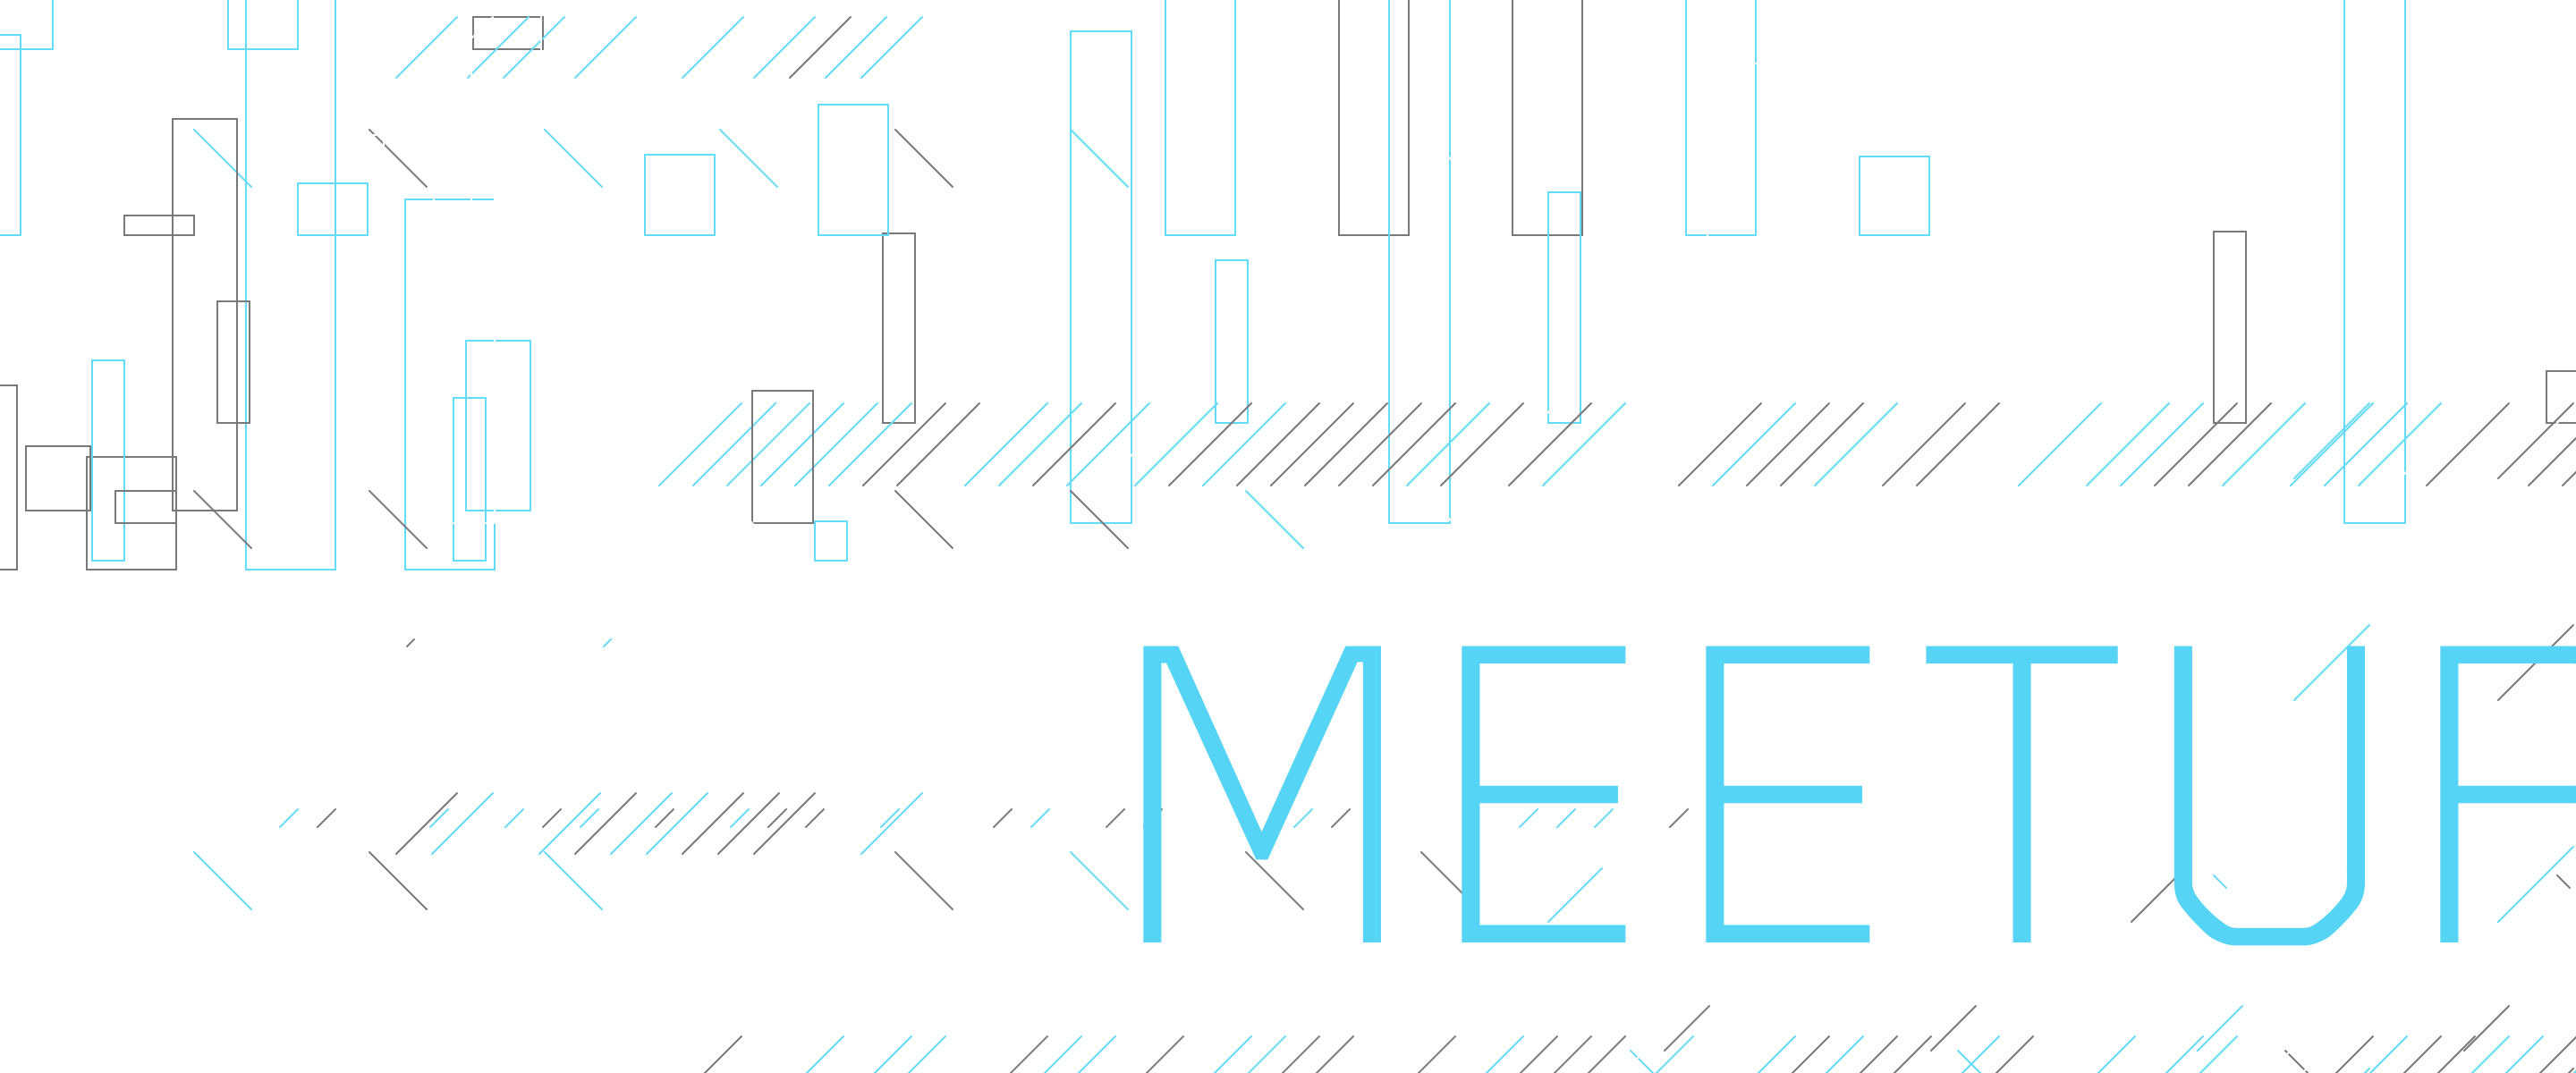 The Word Meetup in Capital Letters on a white background with lines and rectangles on it.